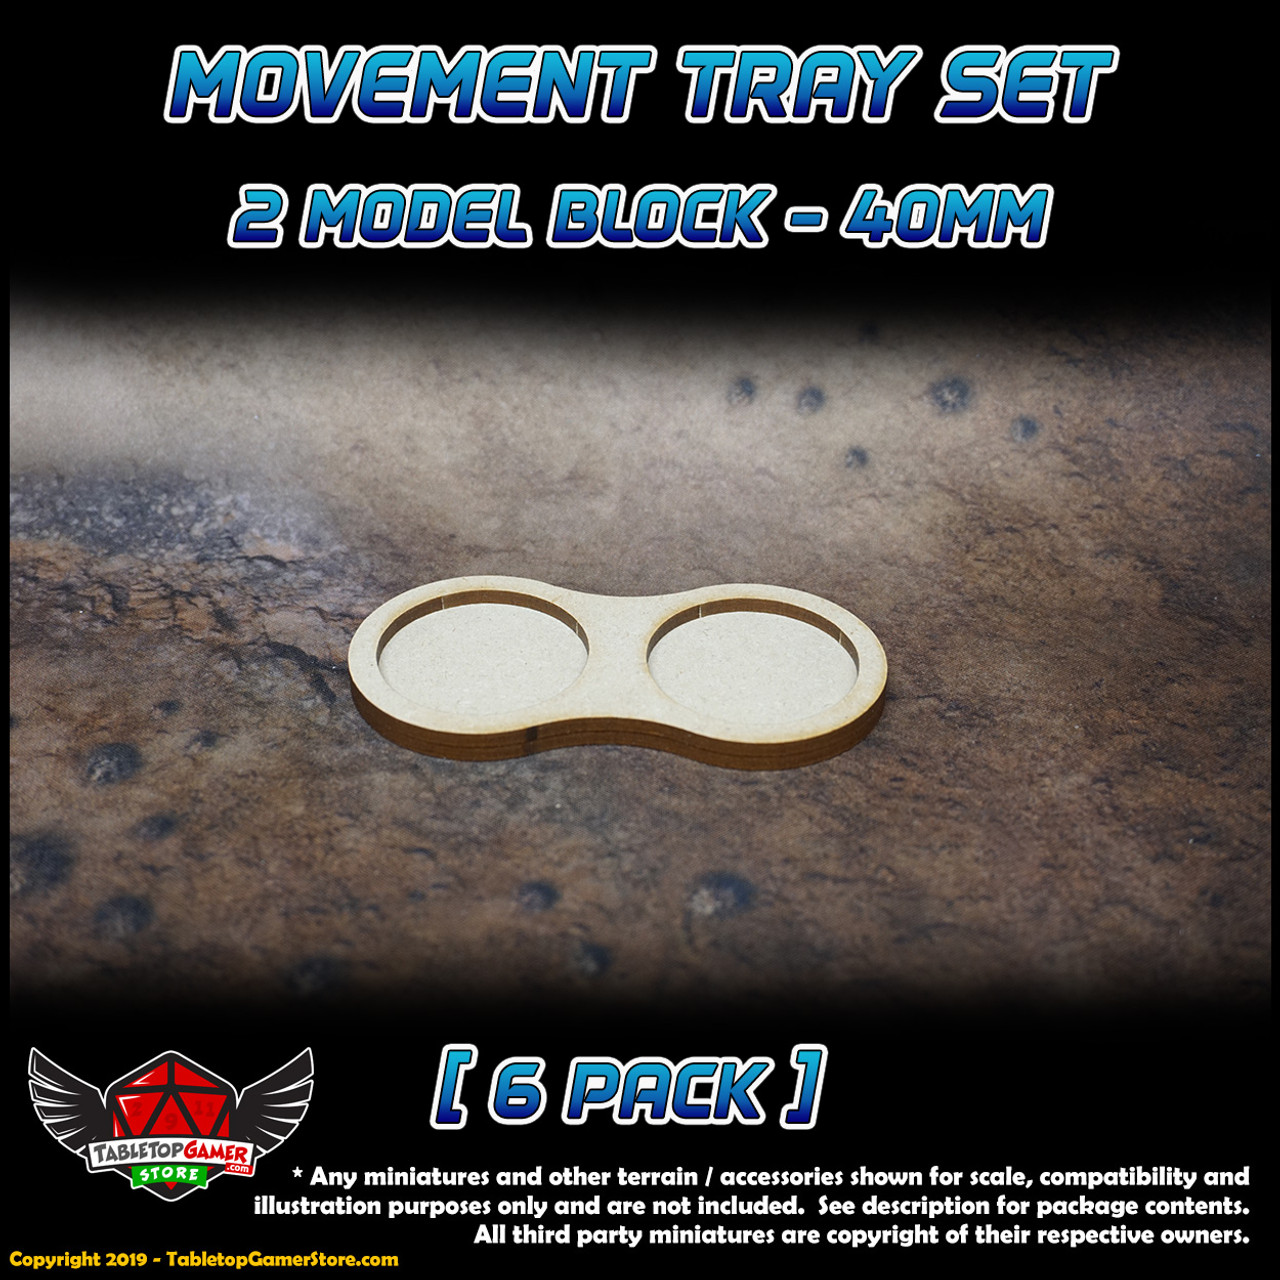 40mm Movement Tray Set - 2 Model Block - 6 Pack